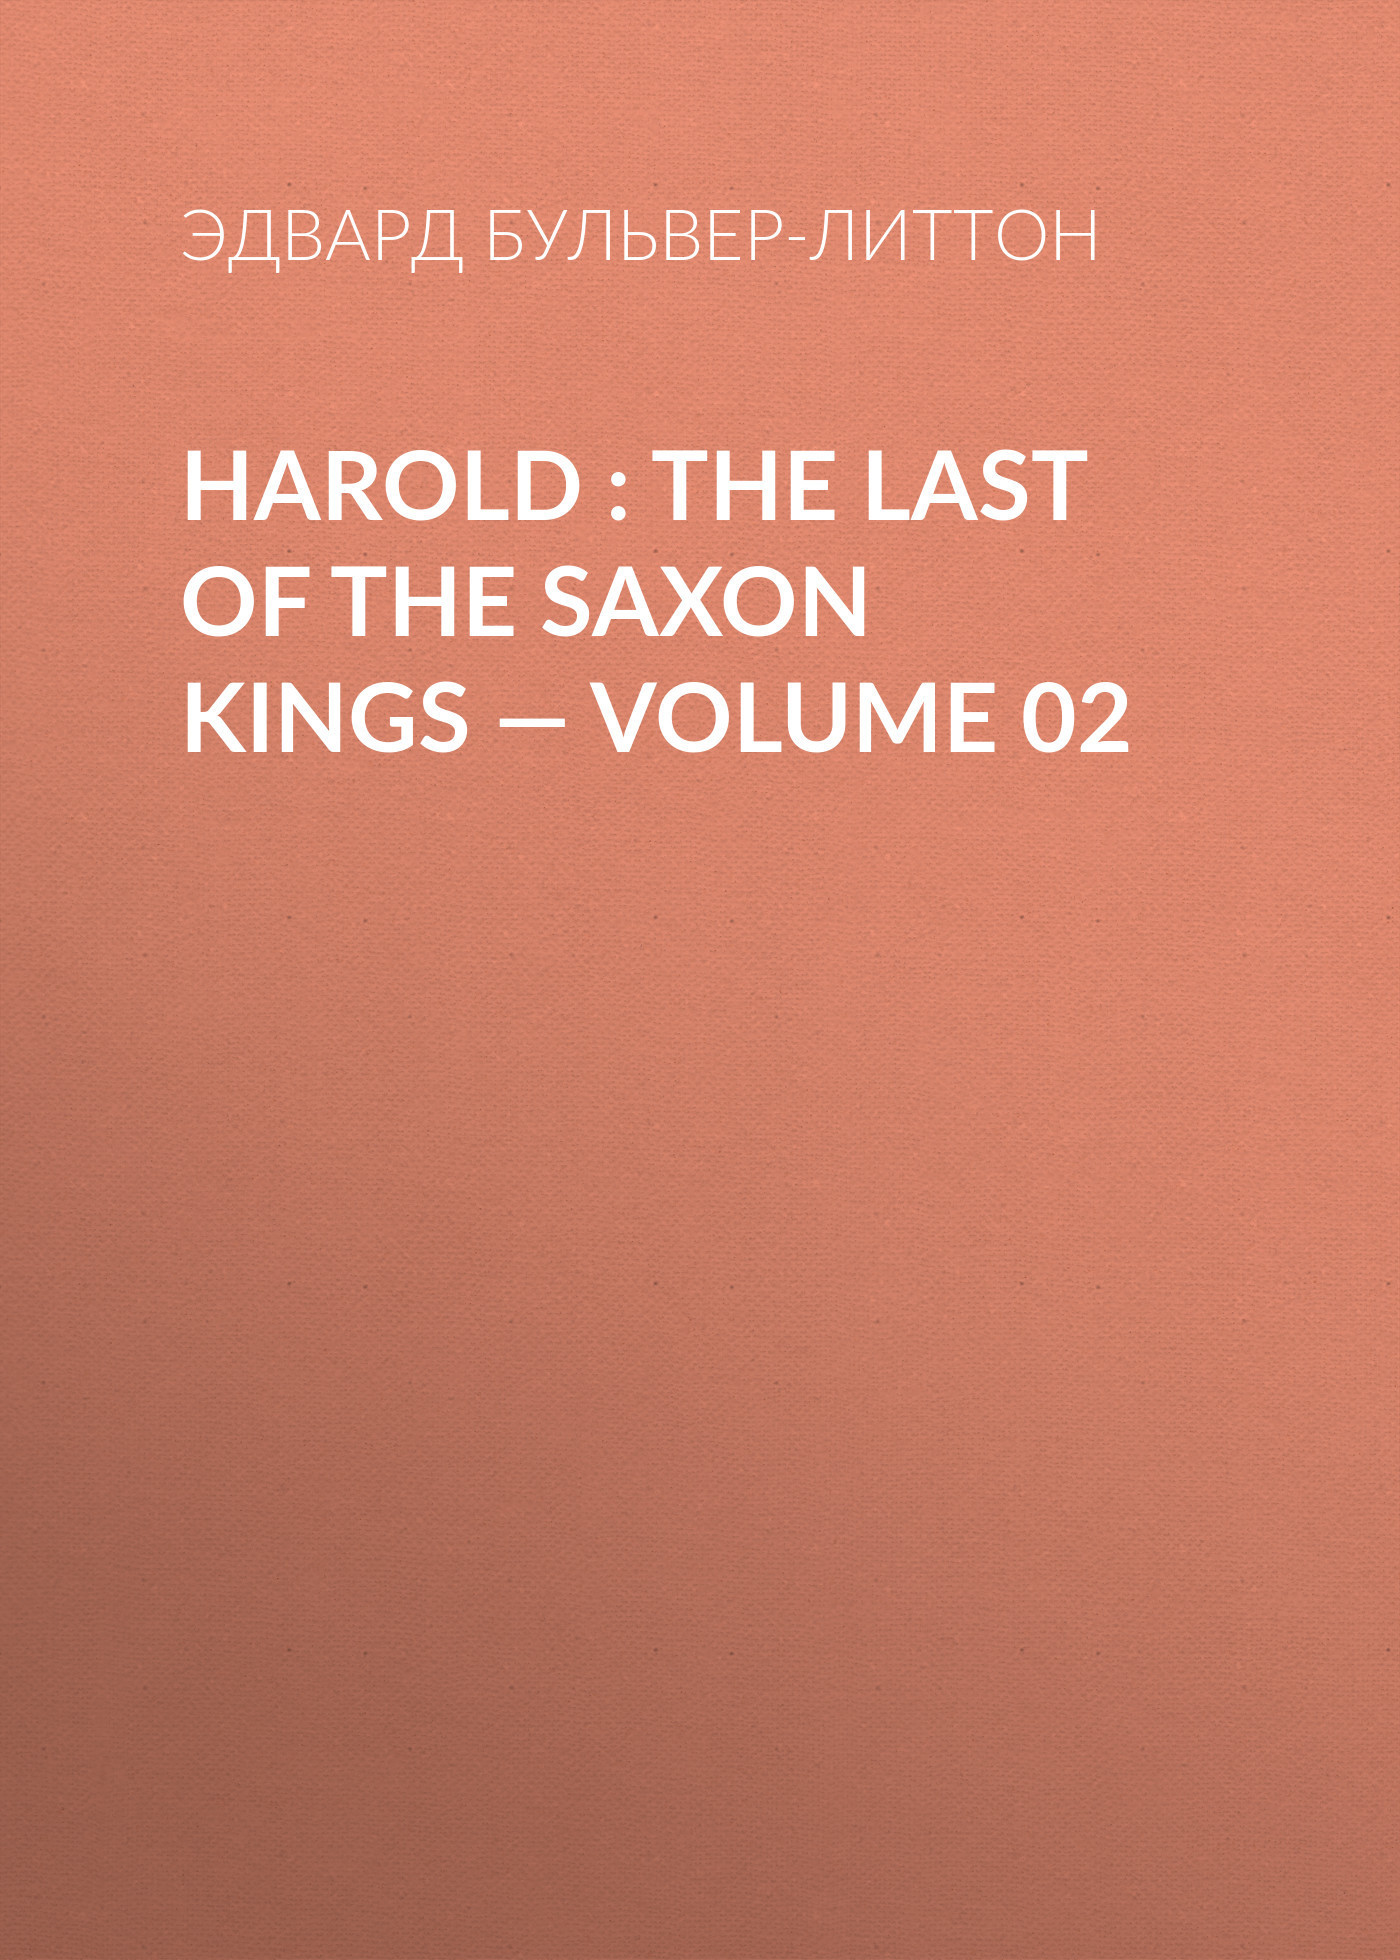 Эдвард Бульвер-Литтон Harold : the Last of the Saxon Kings — Volume 02 t2 tc c703 картридж аналог 703 для canon lbp2900 3000 hp laserjet 1010 1020 1022 m1005